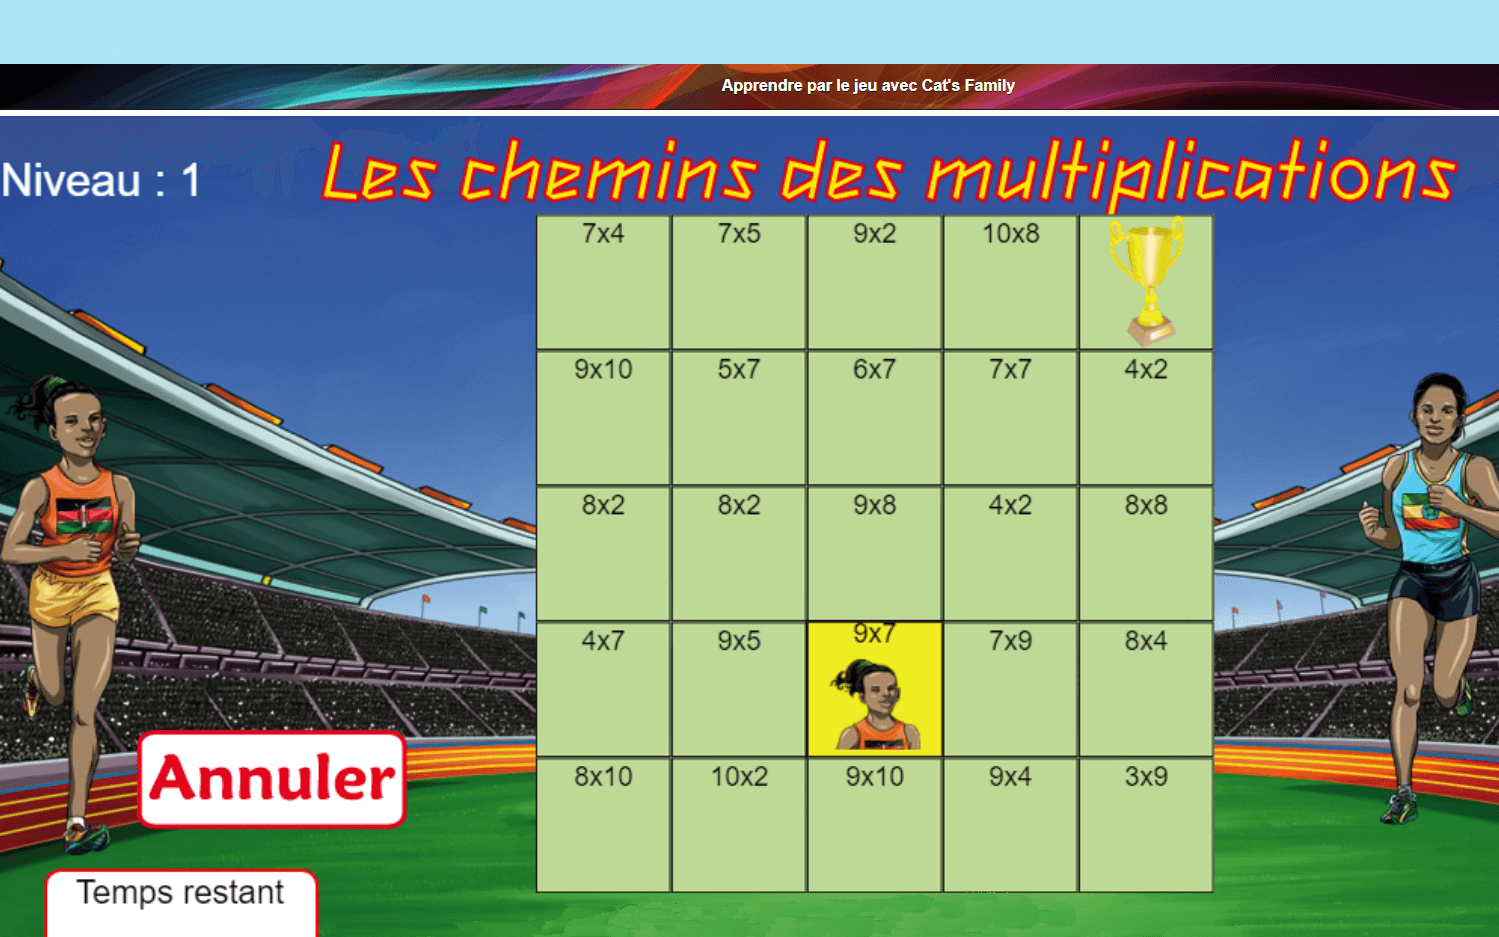 Le chemin des multiplications